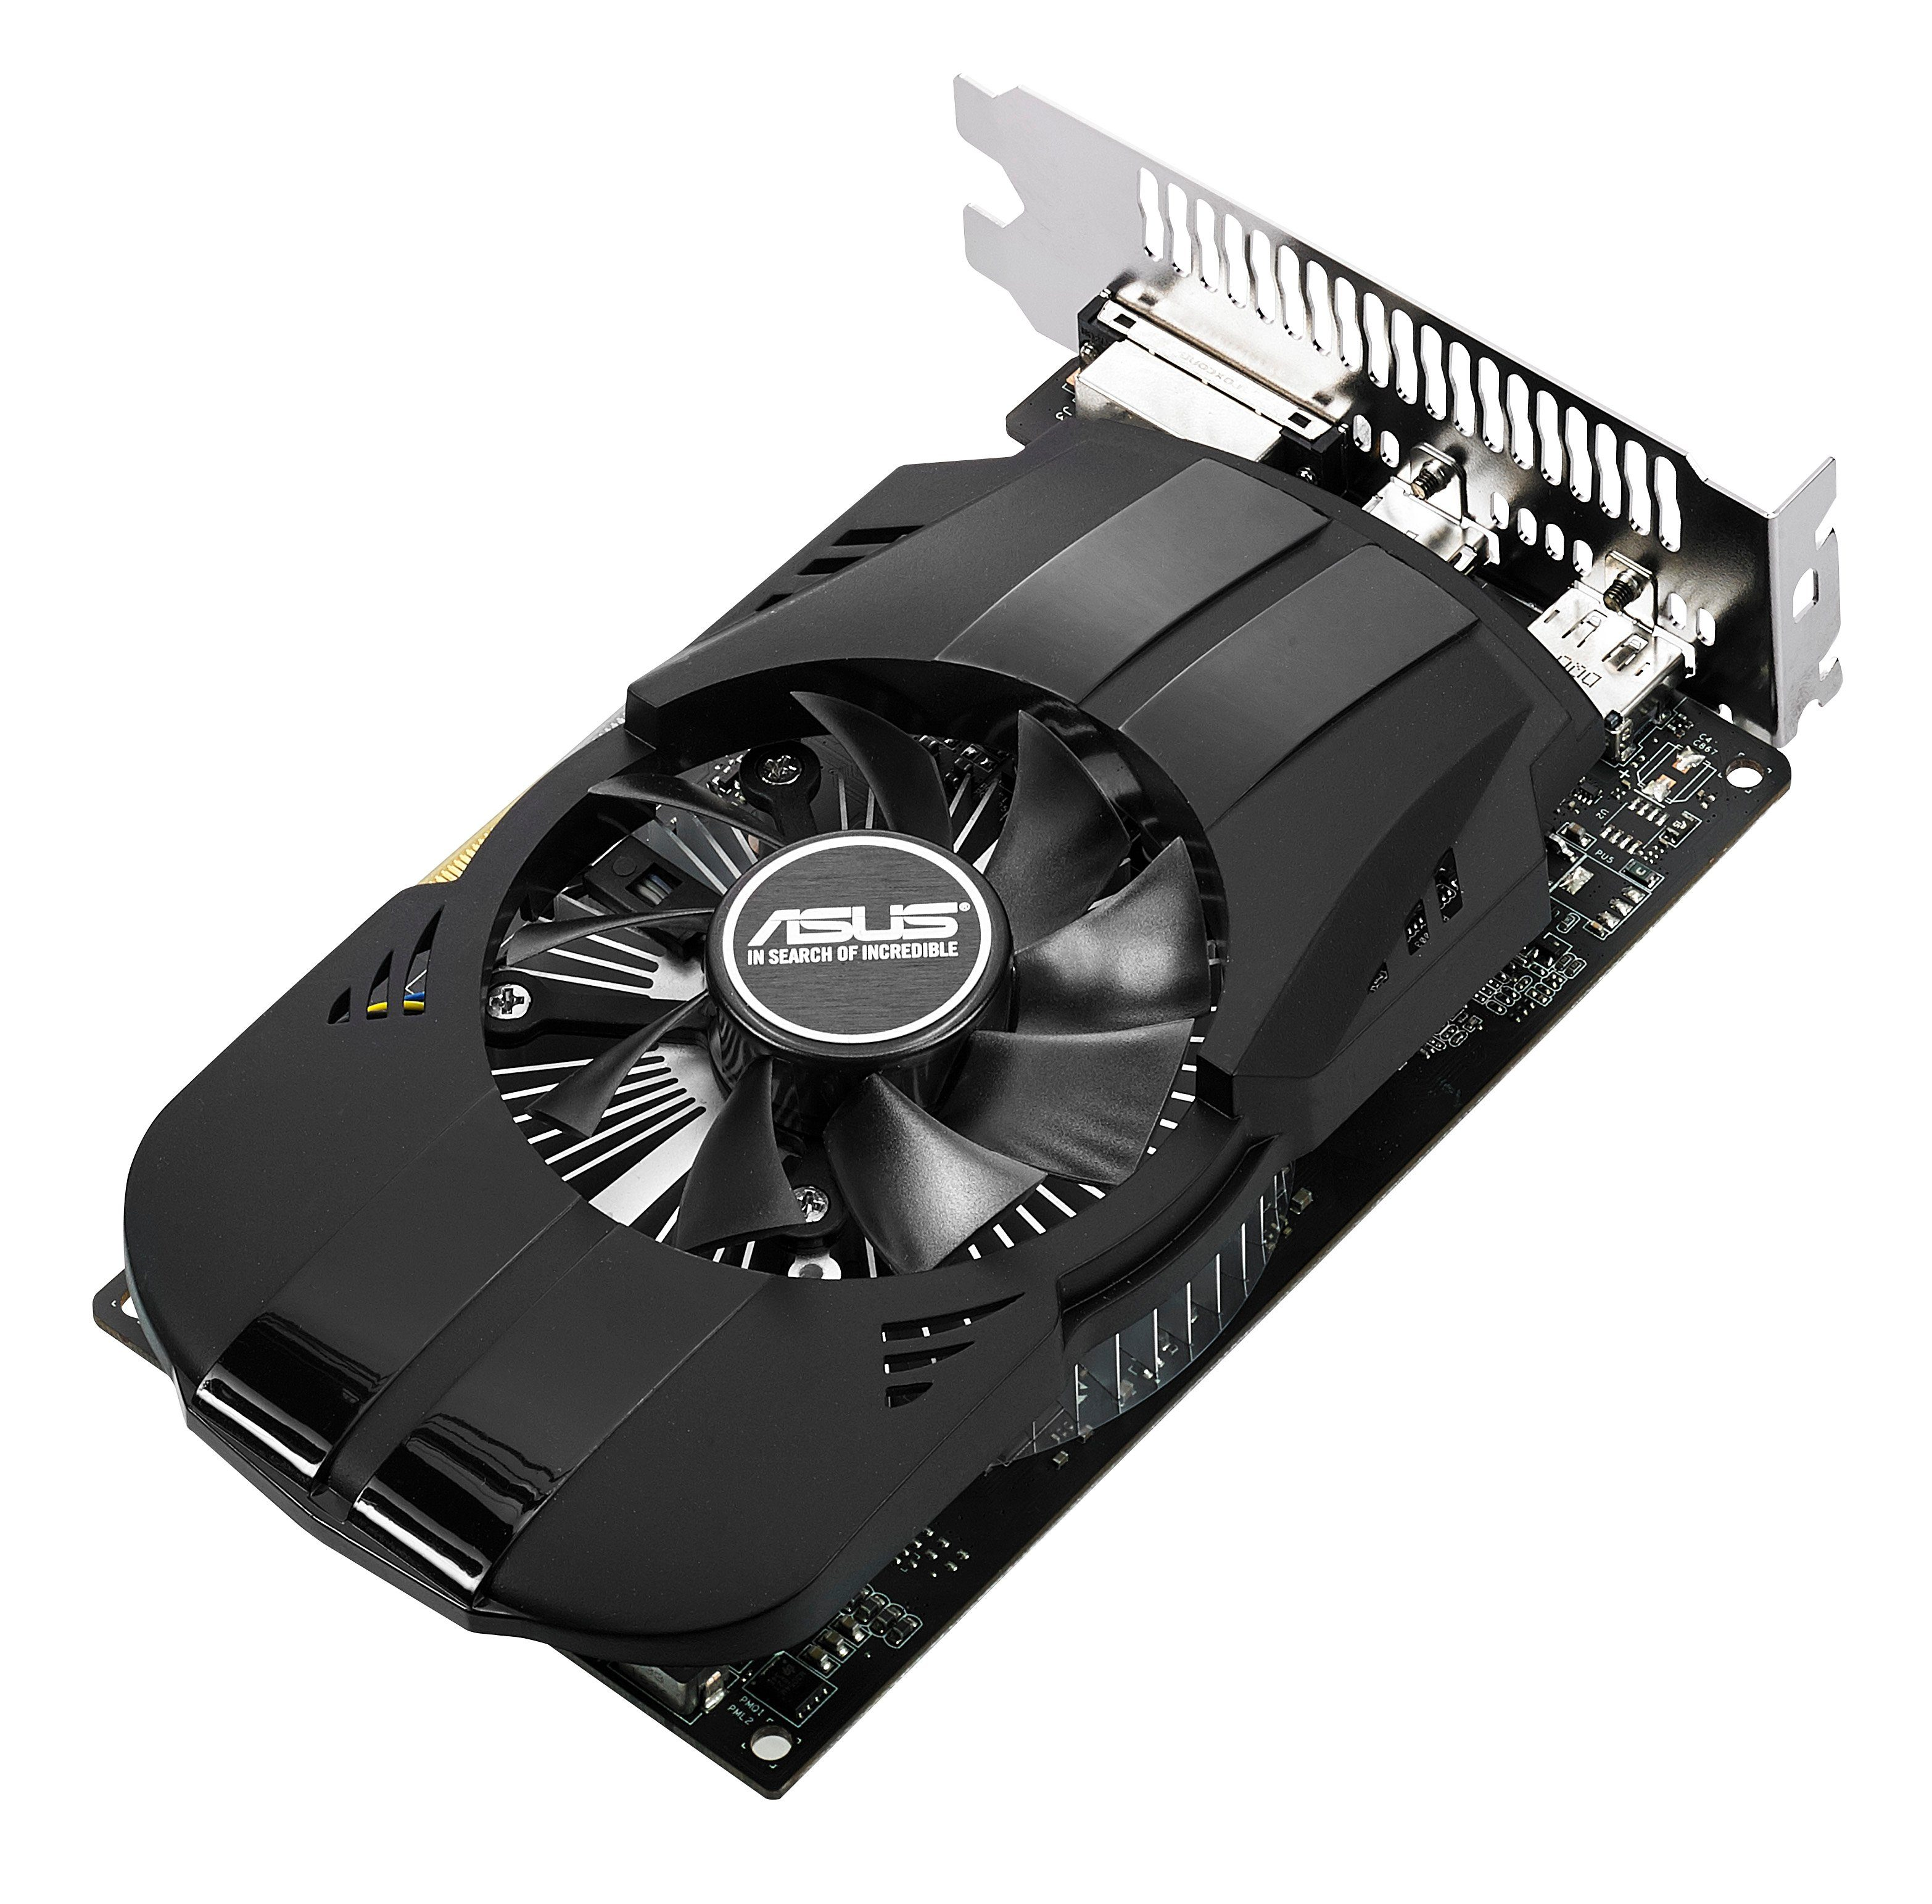 ASUS Grafikkarte NVIDIA GeForce® GTX 1050 2GB »PH-GTX1050-2G«